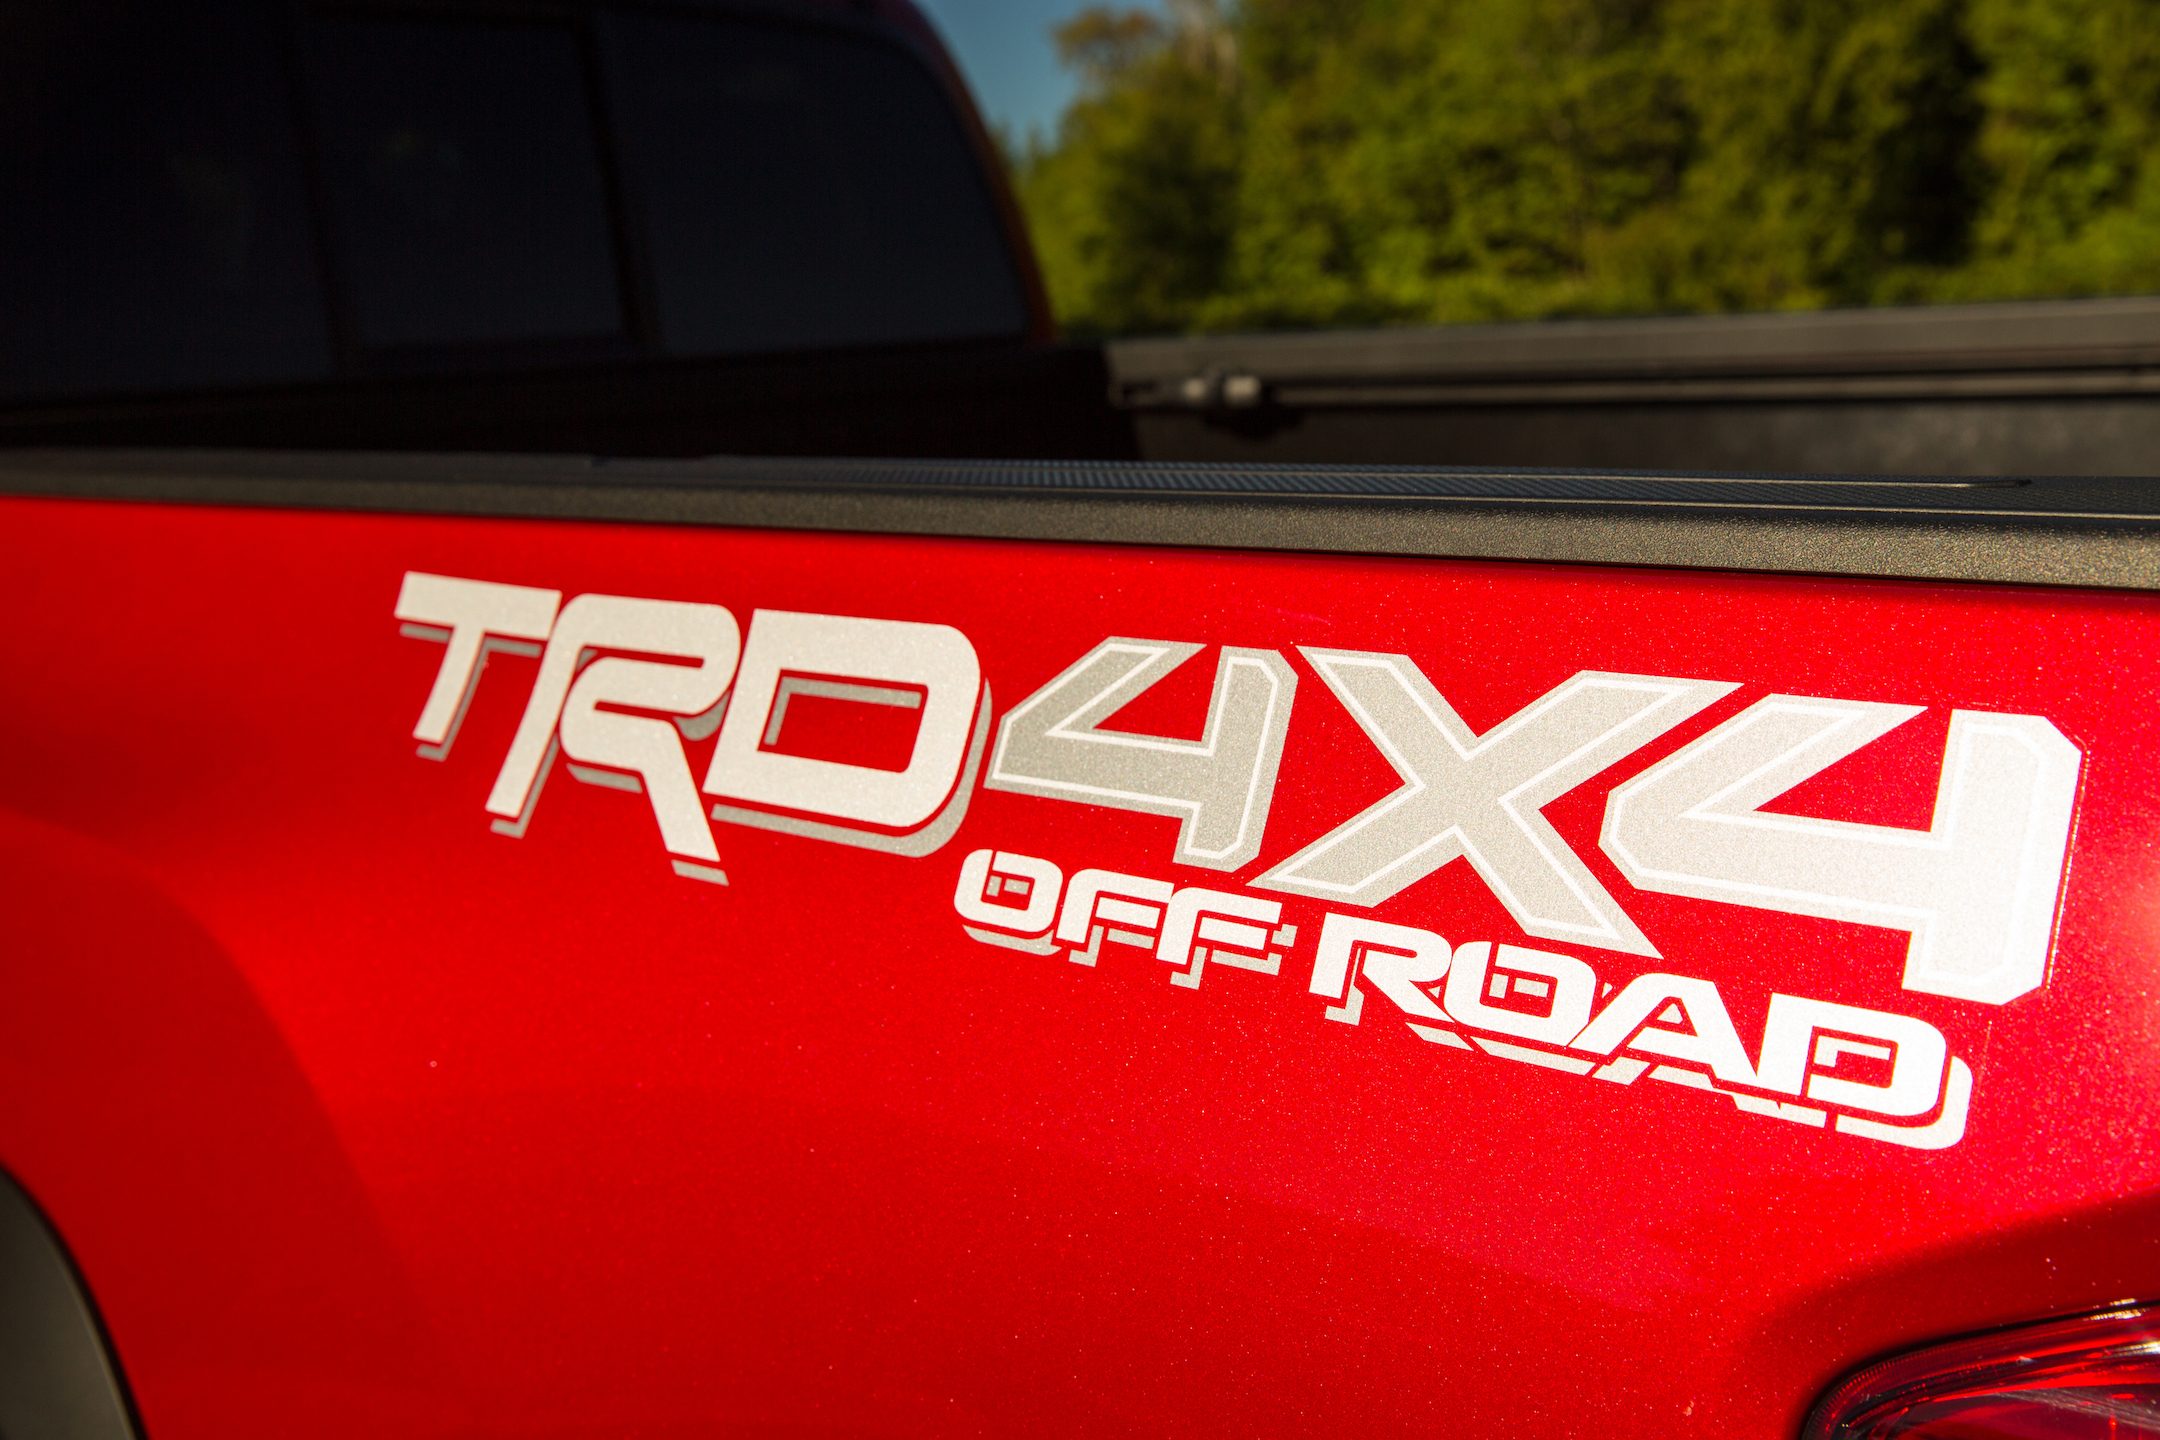 4x4 01 Vinyl Sticker Decal Off Road Jeep Ram Ford Chevy Tundra Tacoma 4wd